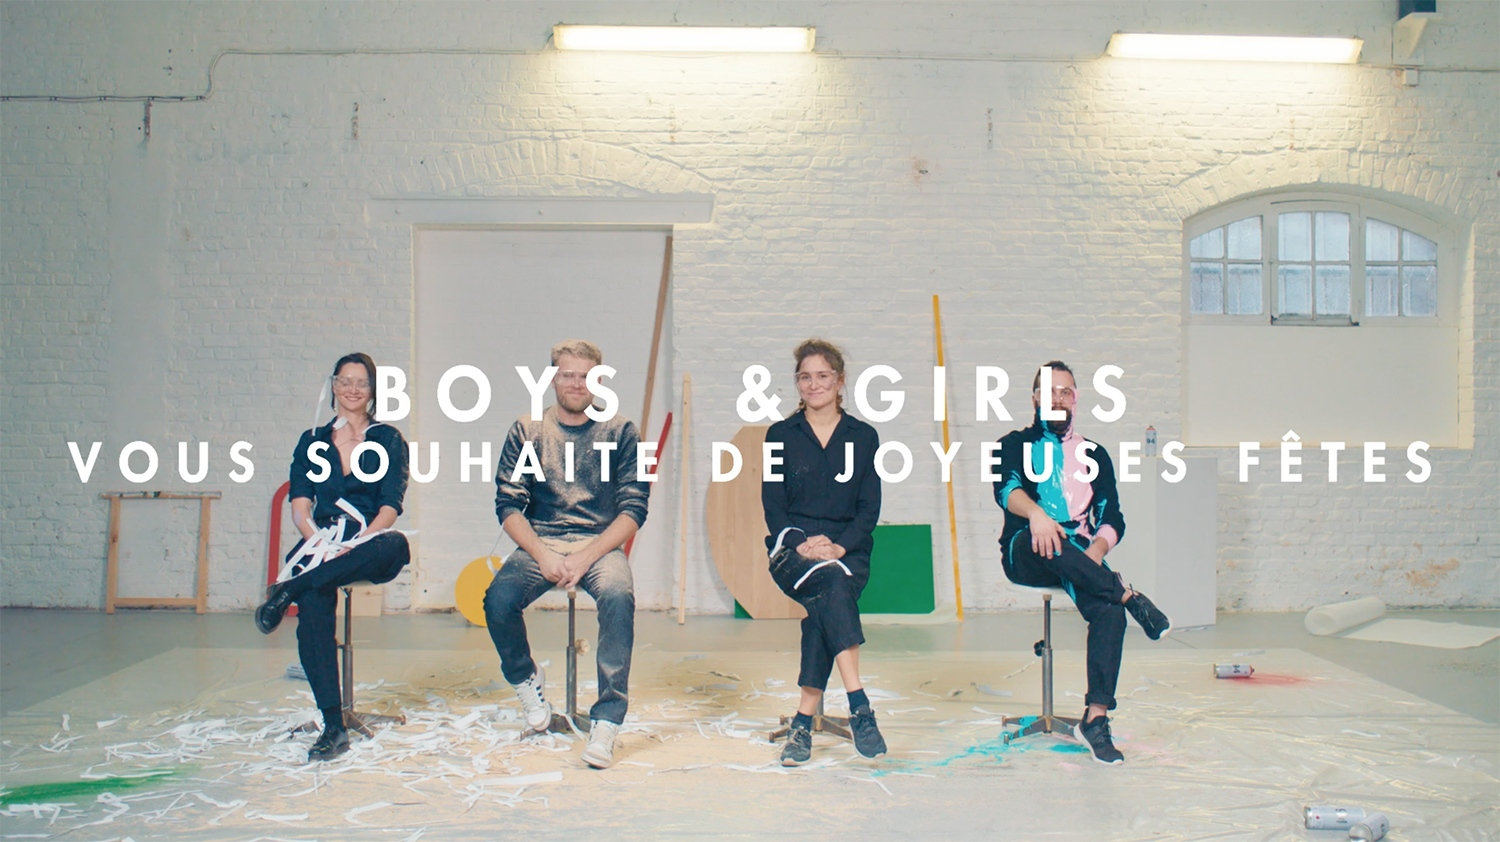 voeux 2018 Boys and Girls Stories